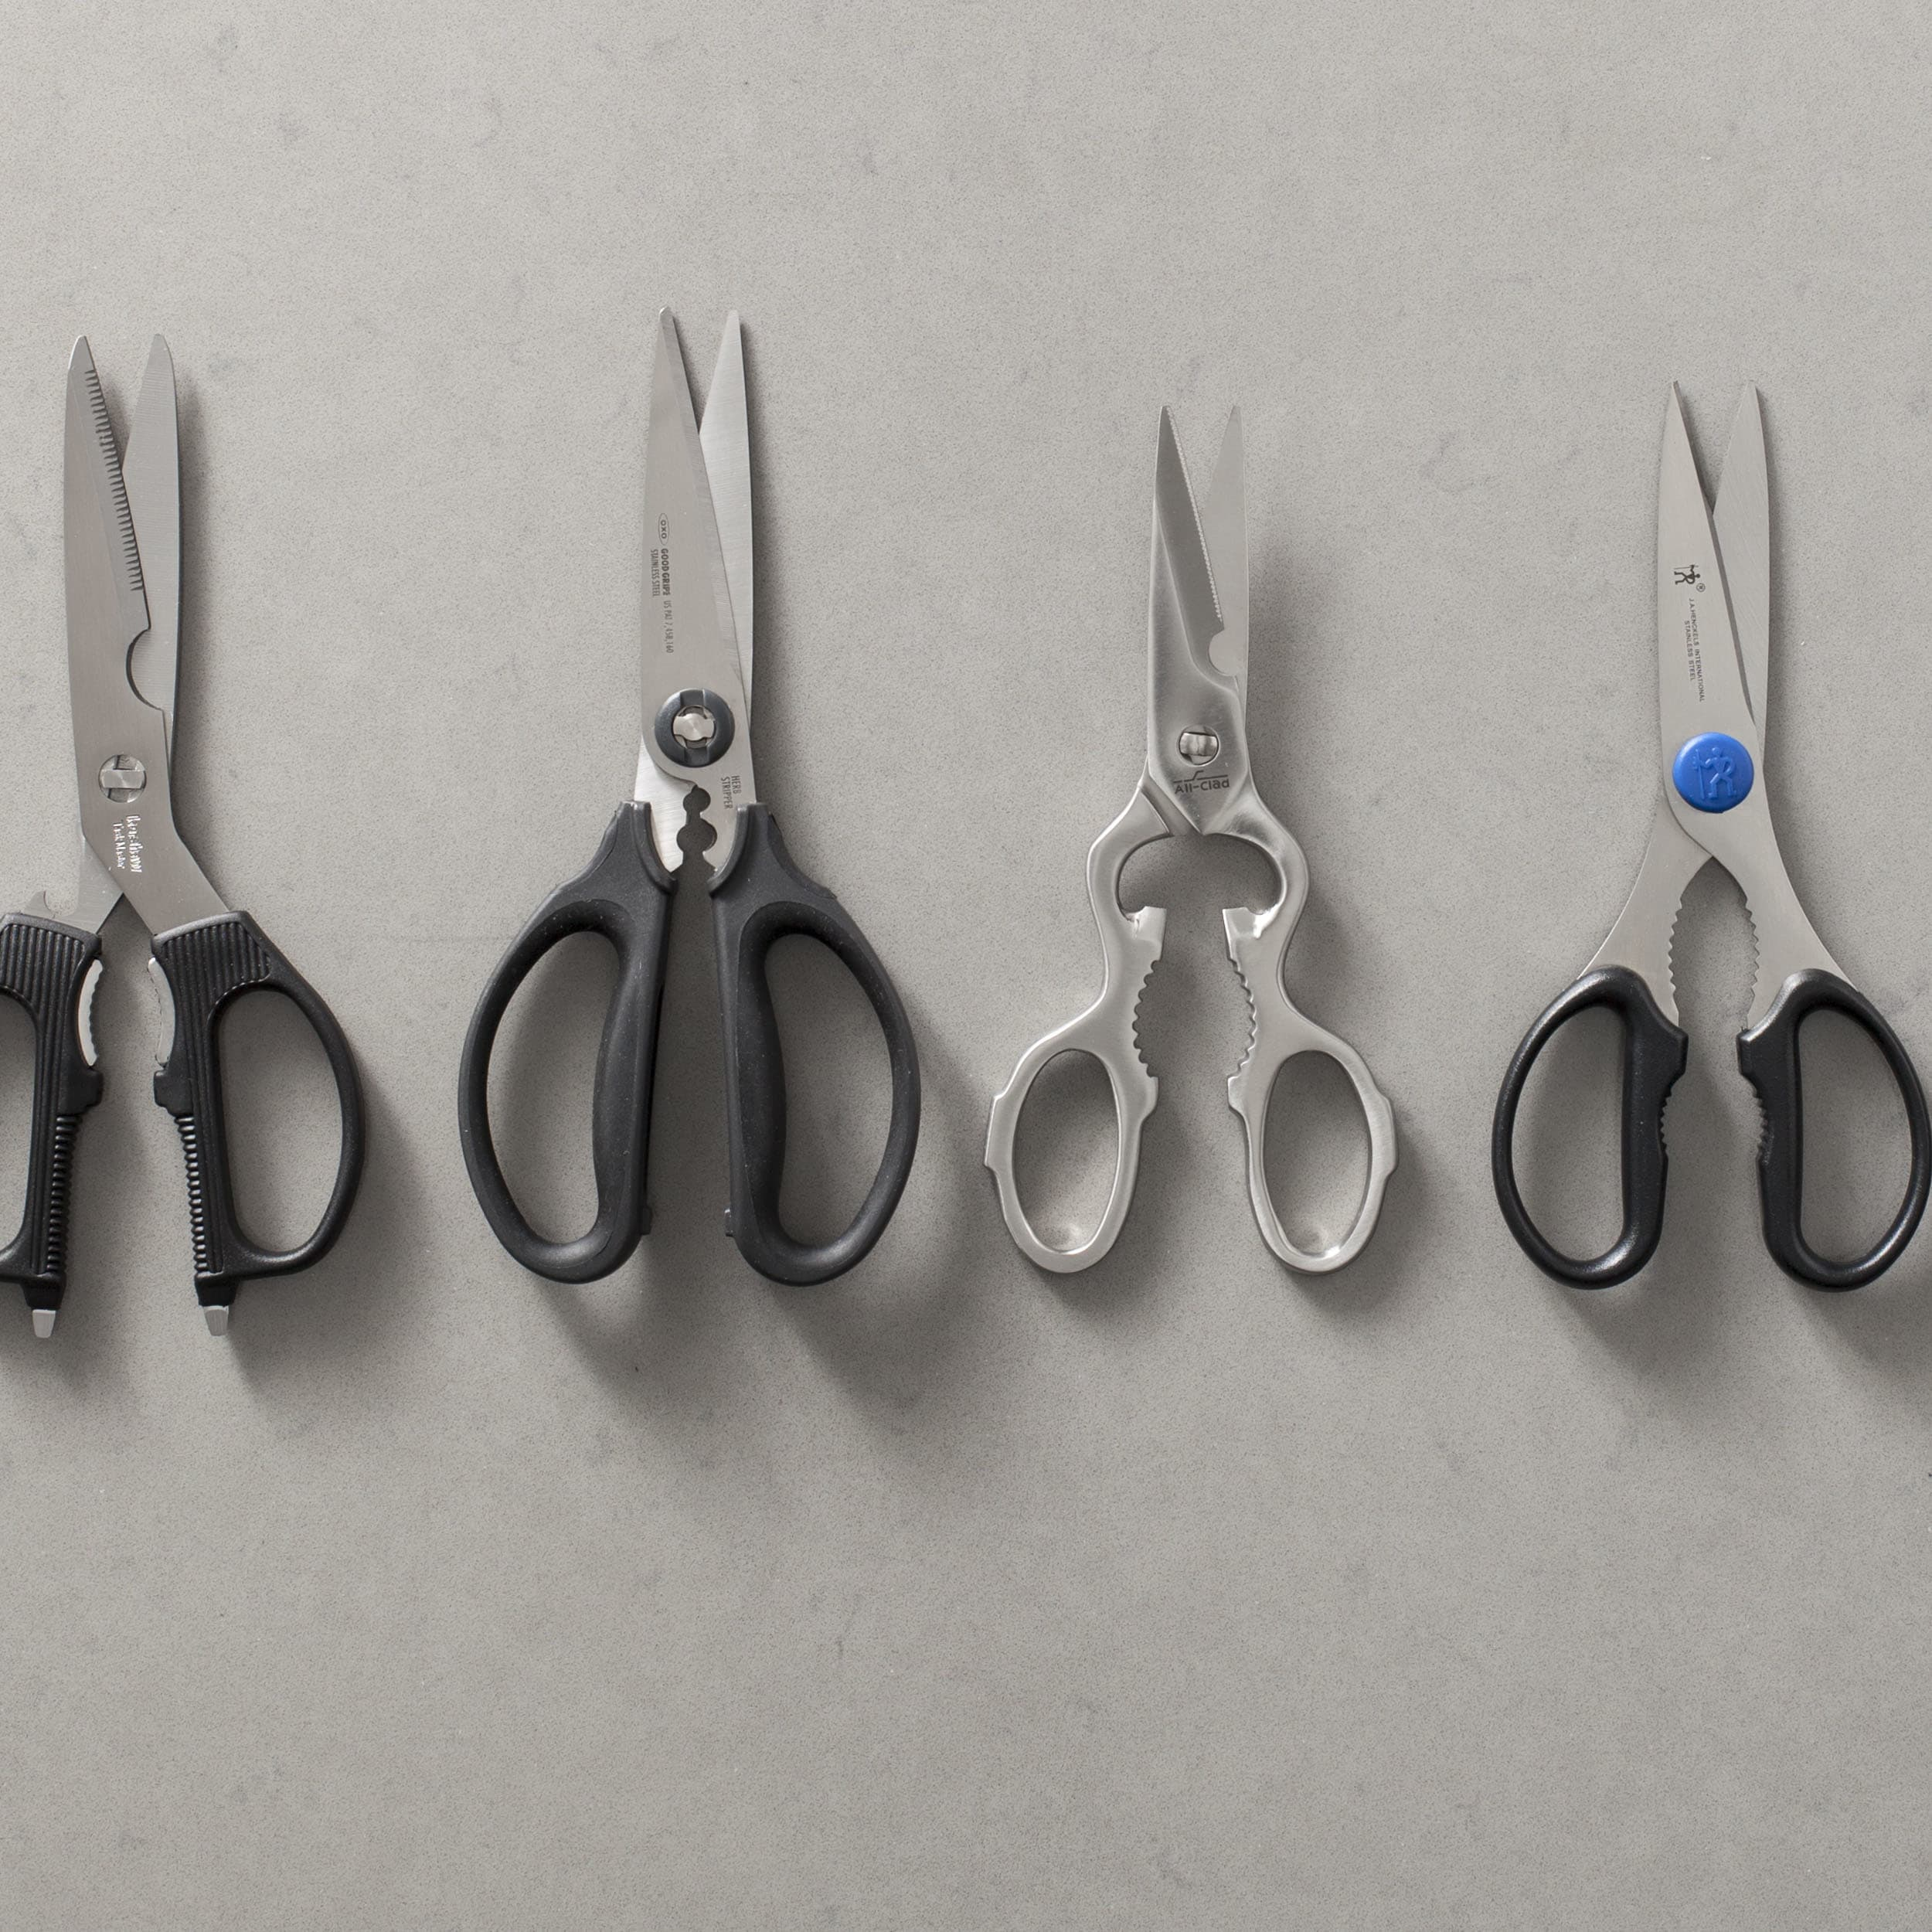 The Best Kitchen Shears